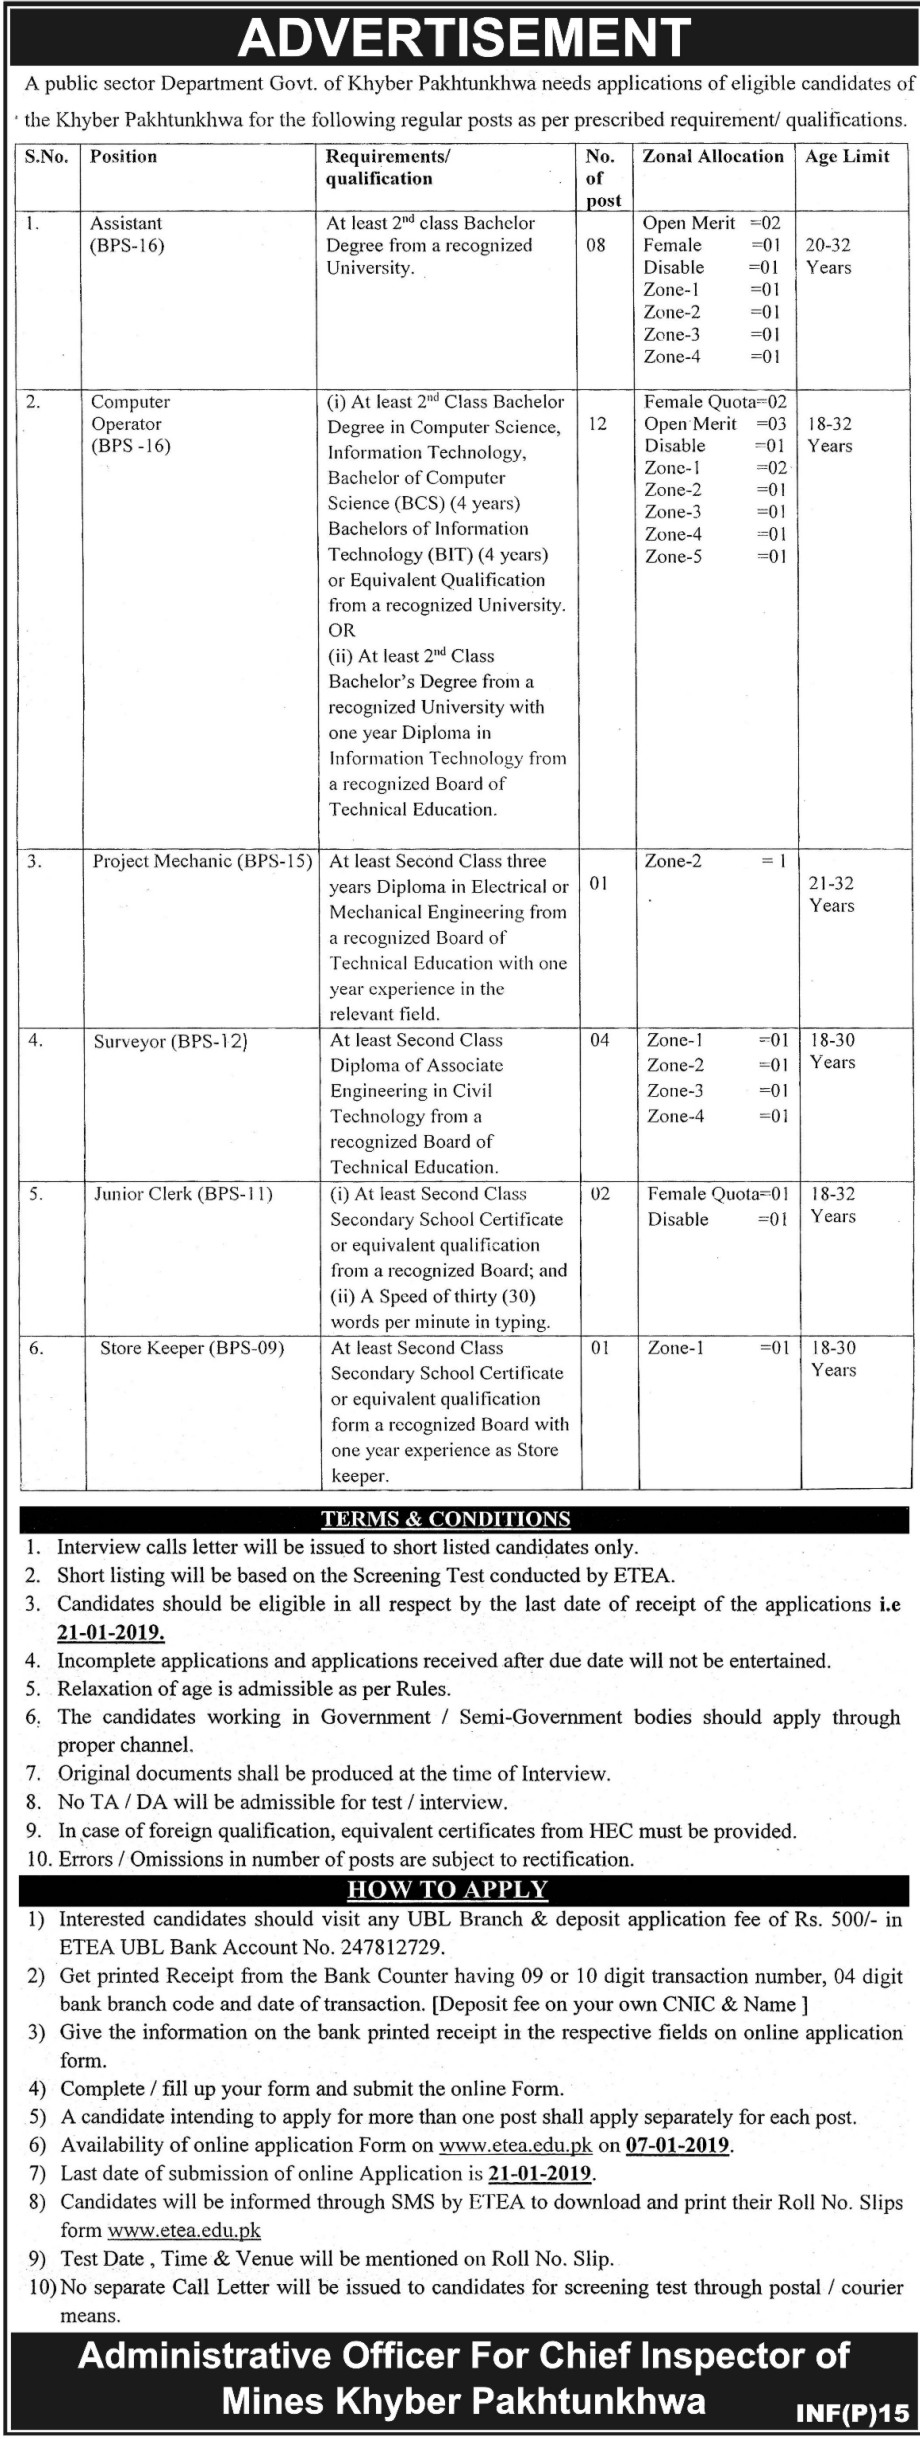 Mines And Minerals Department KPK 05 Jan 2019 Jobs